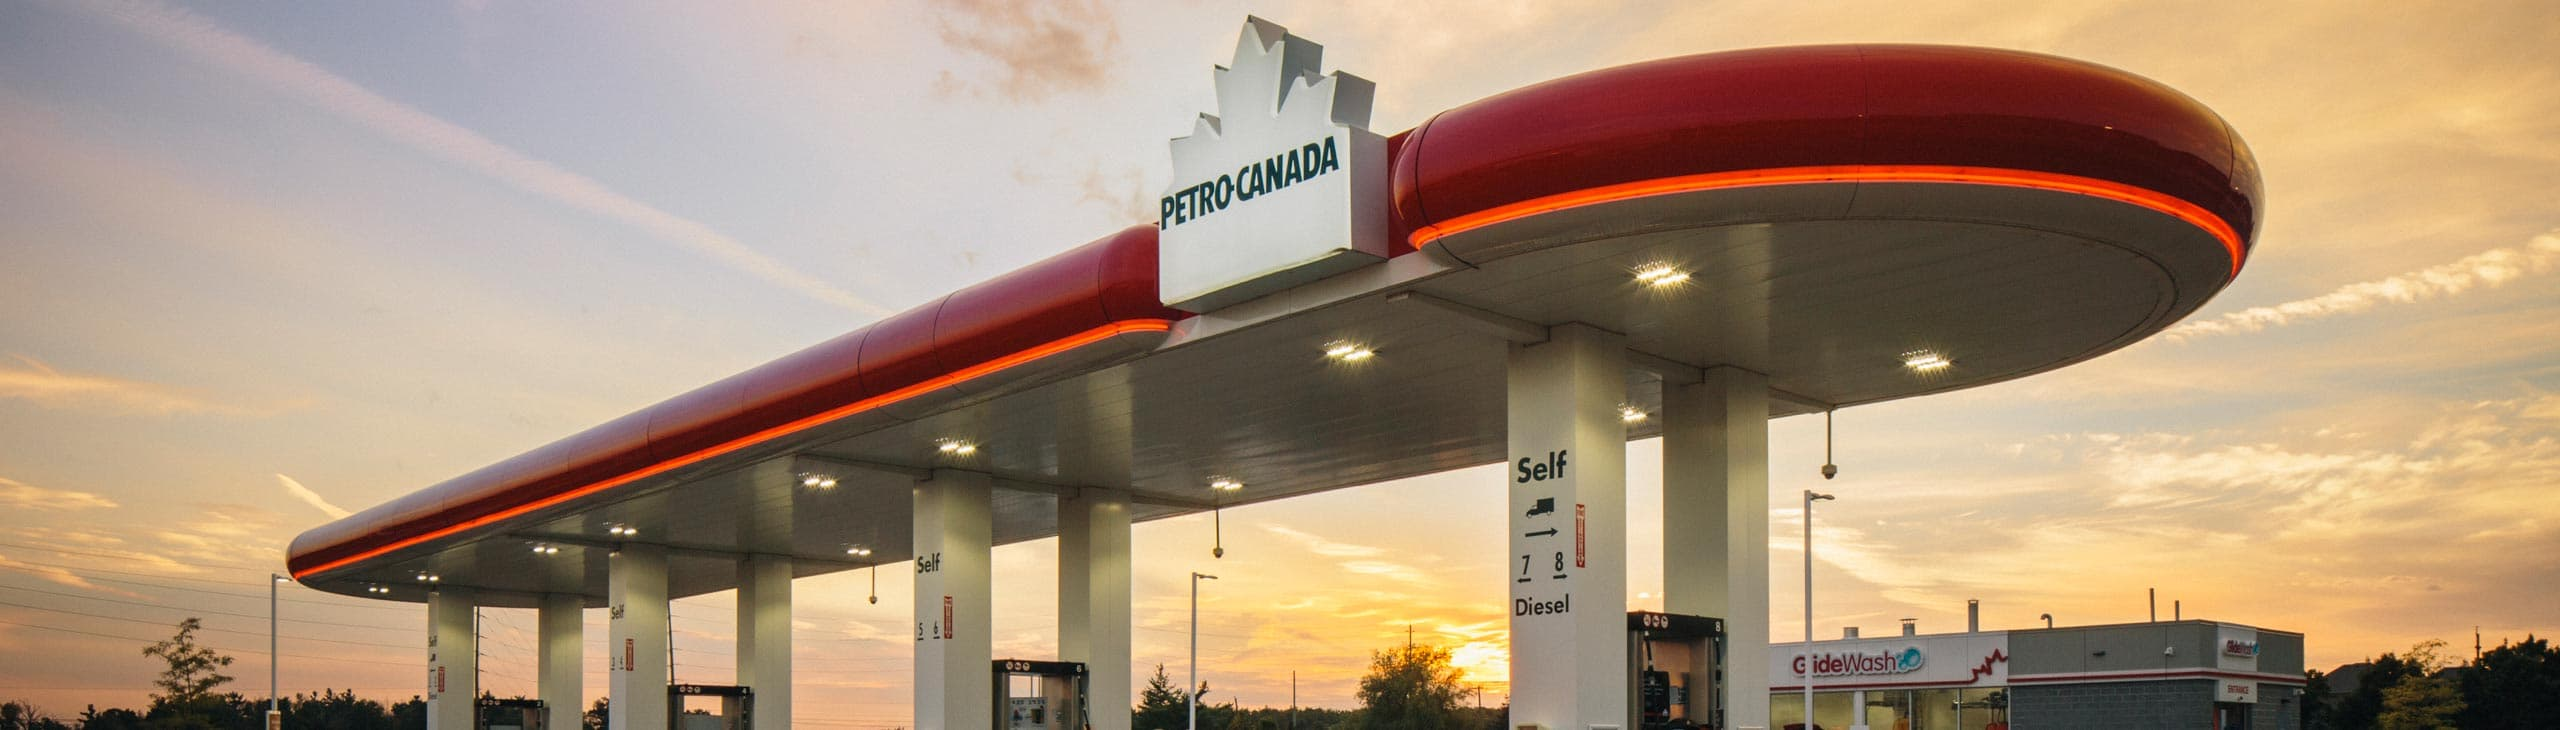 A Petro-Canada gas station at dusk.